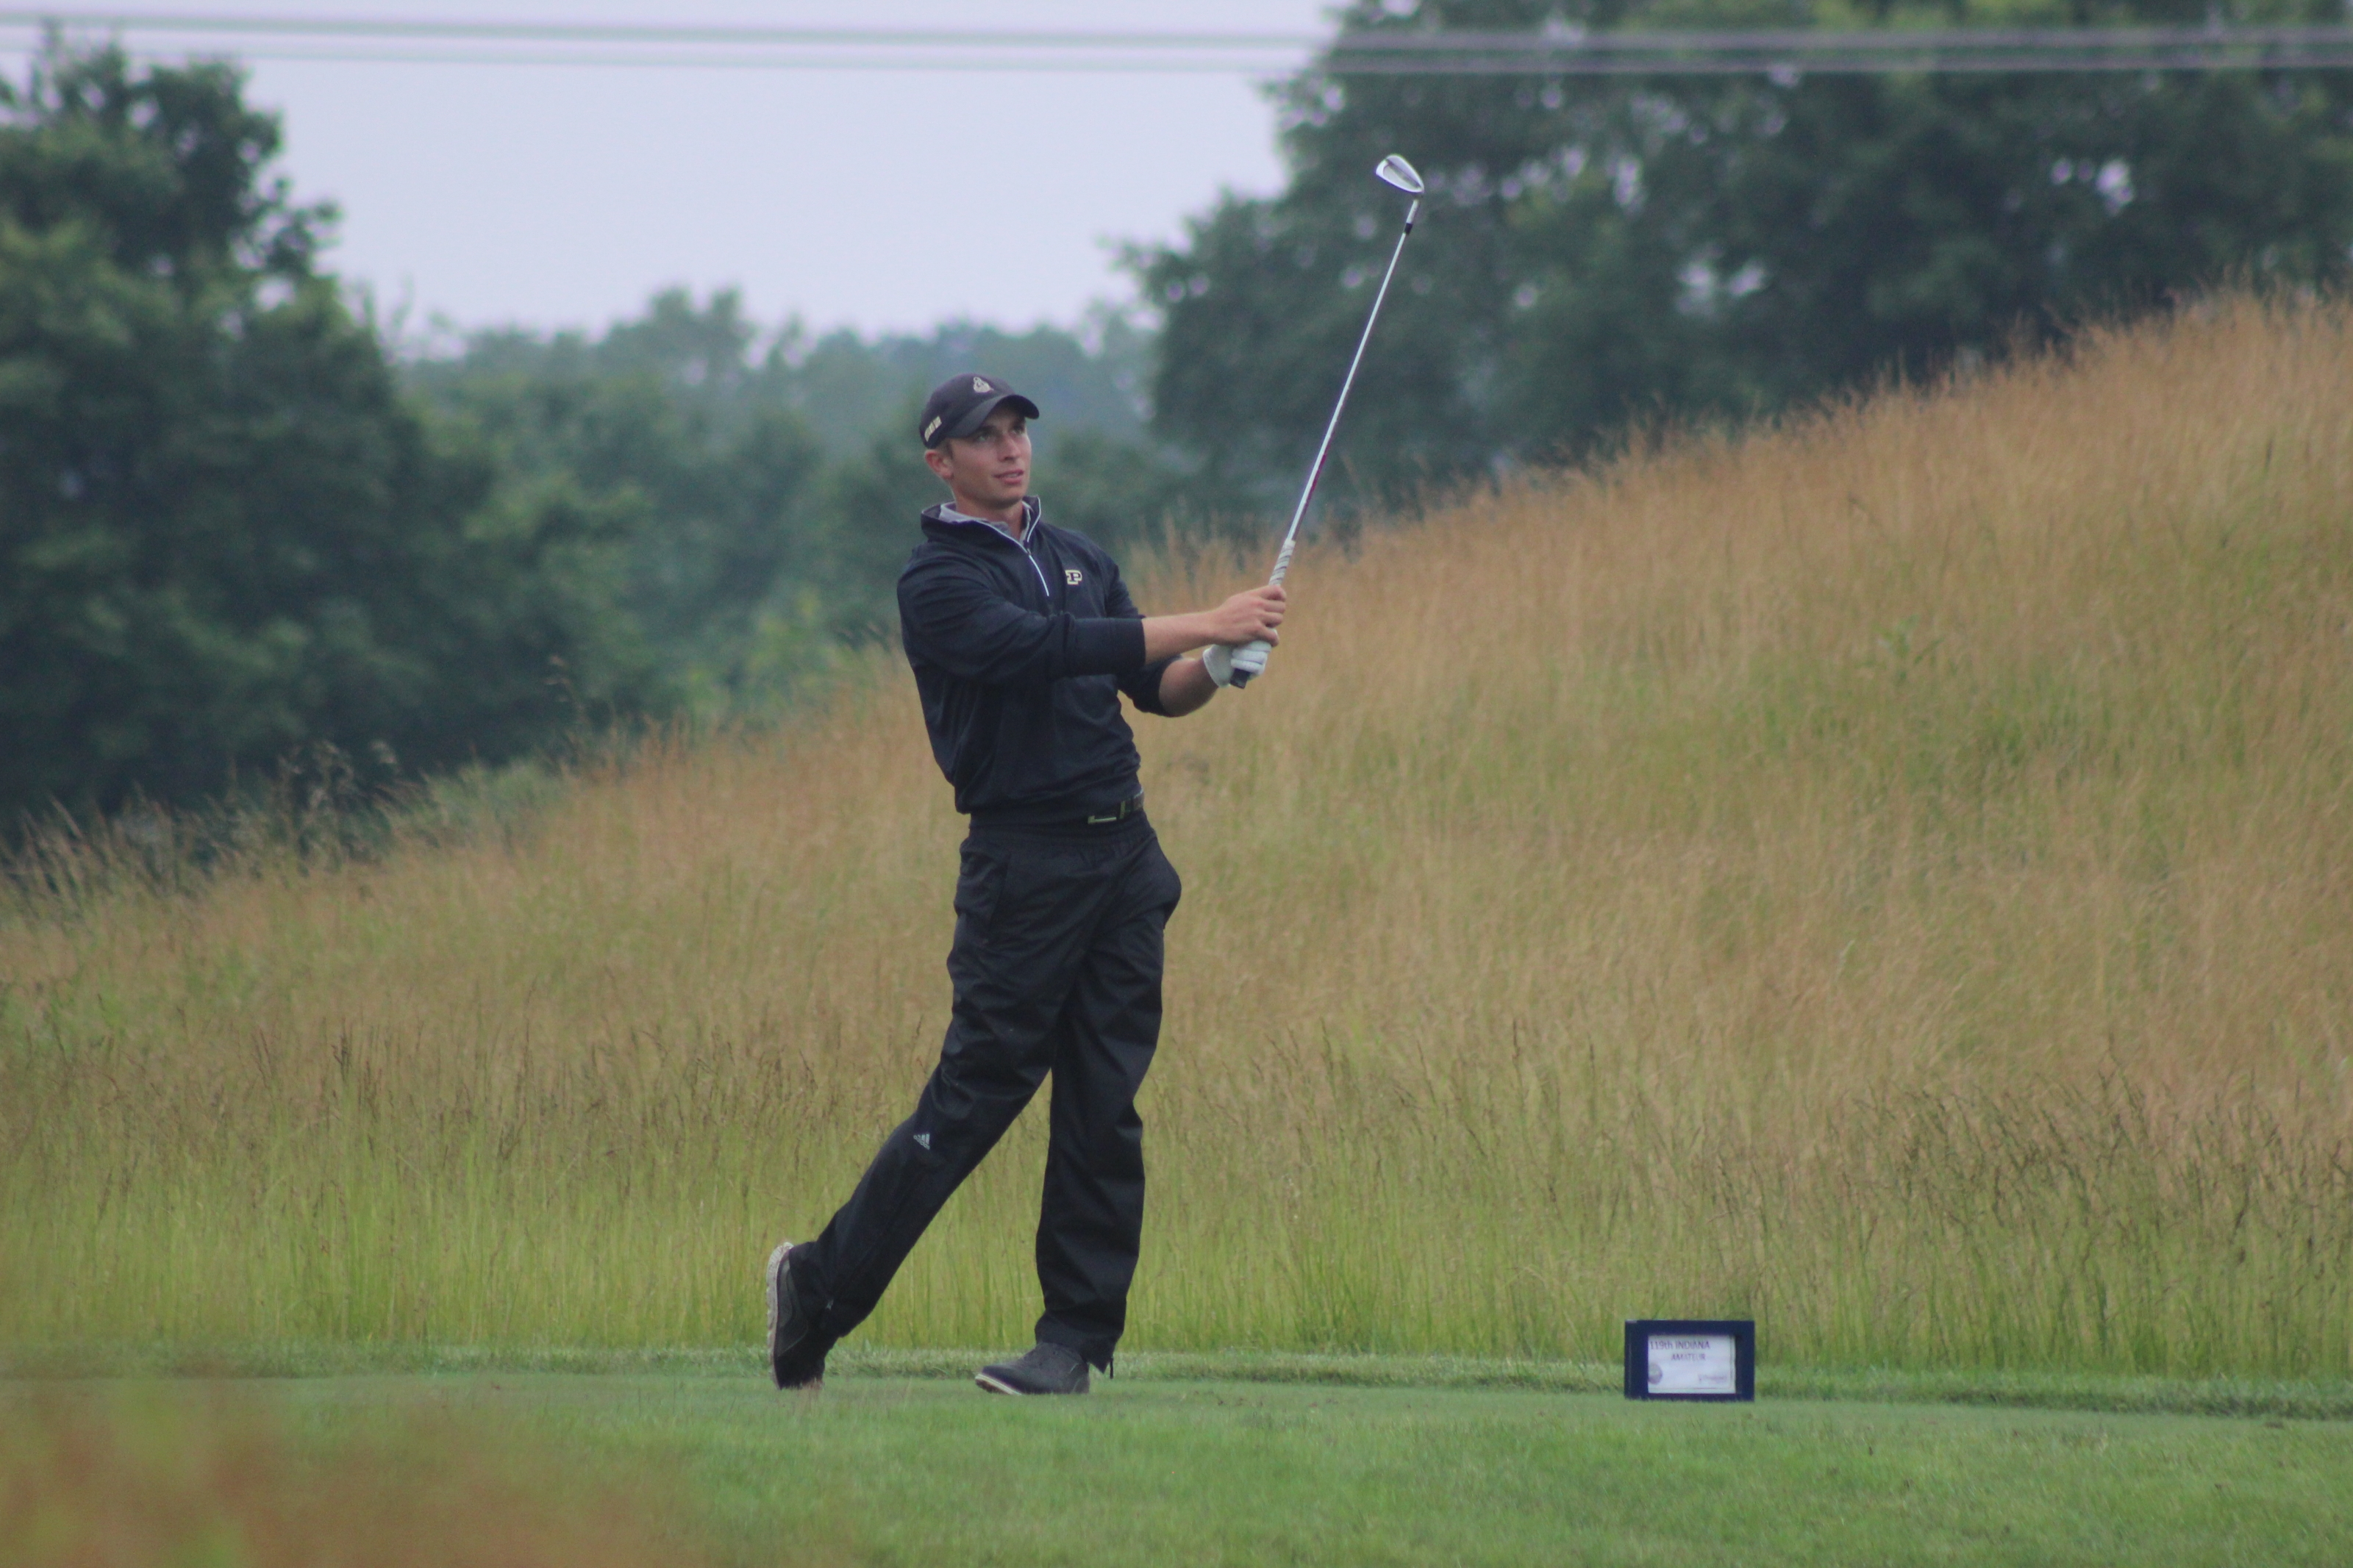 Purdue's Joe Weiler Wins 119th Indiana Amateur Championship in Playoff